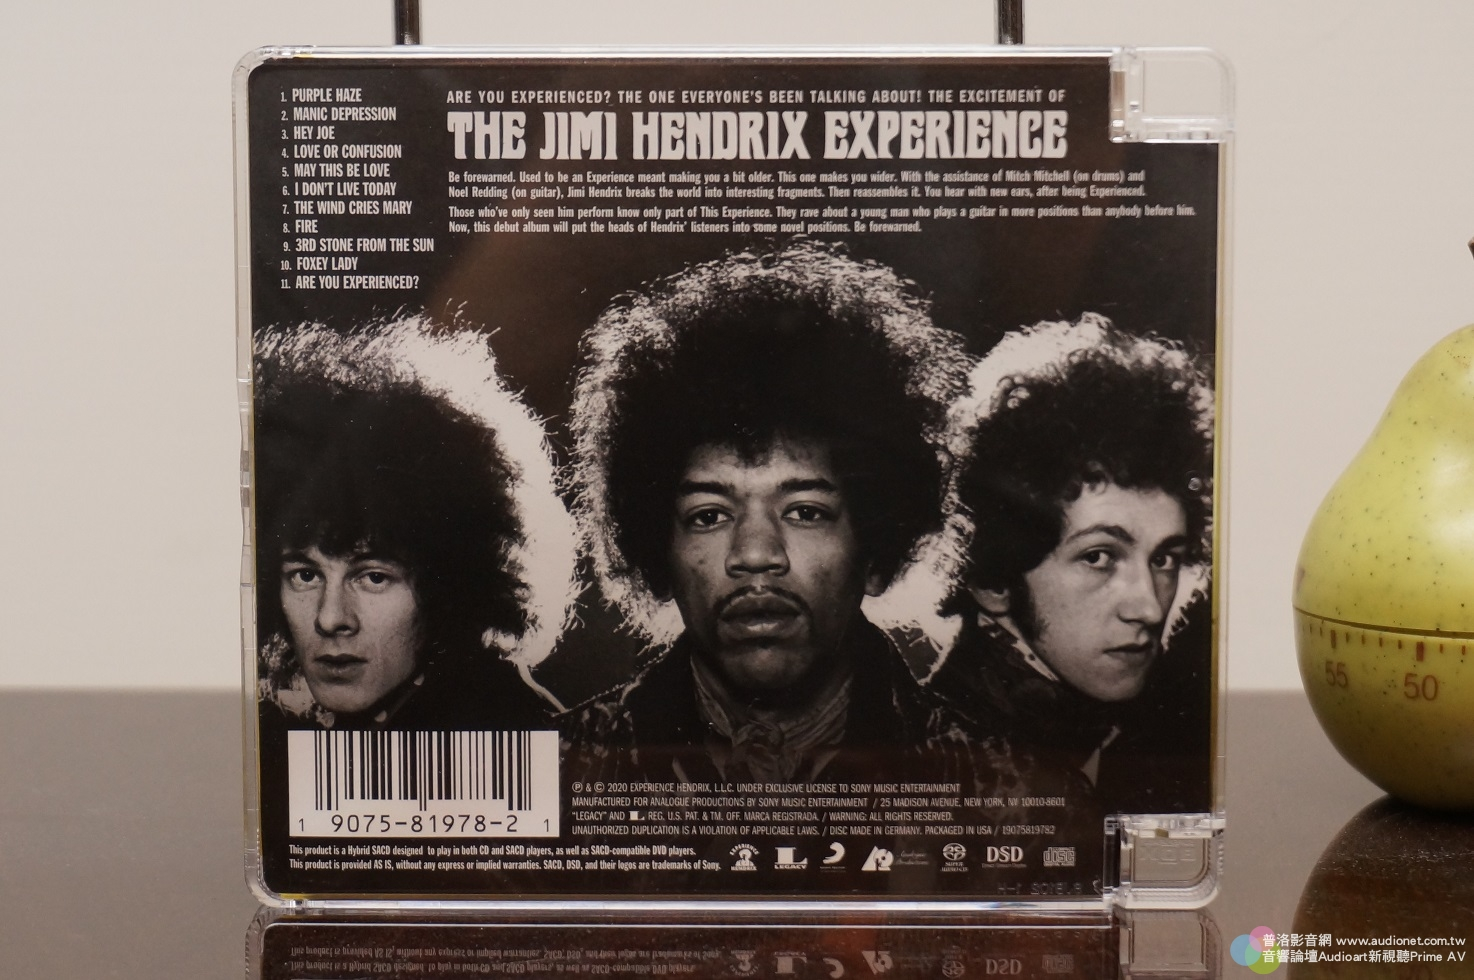 The Jimi Hendrix Experience Are You Experience?收藏經典